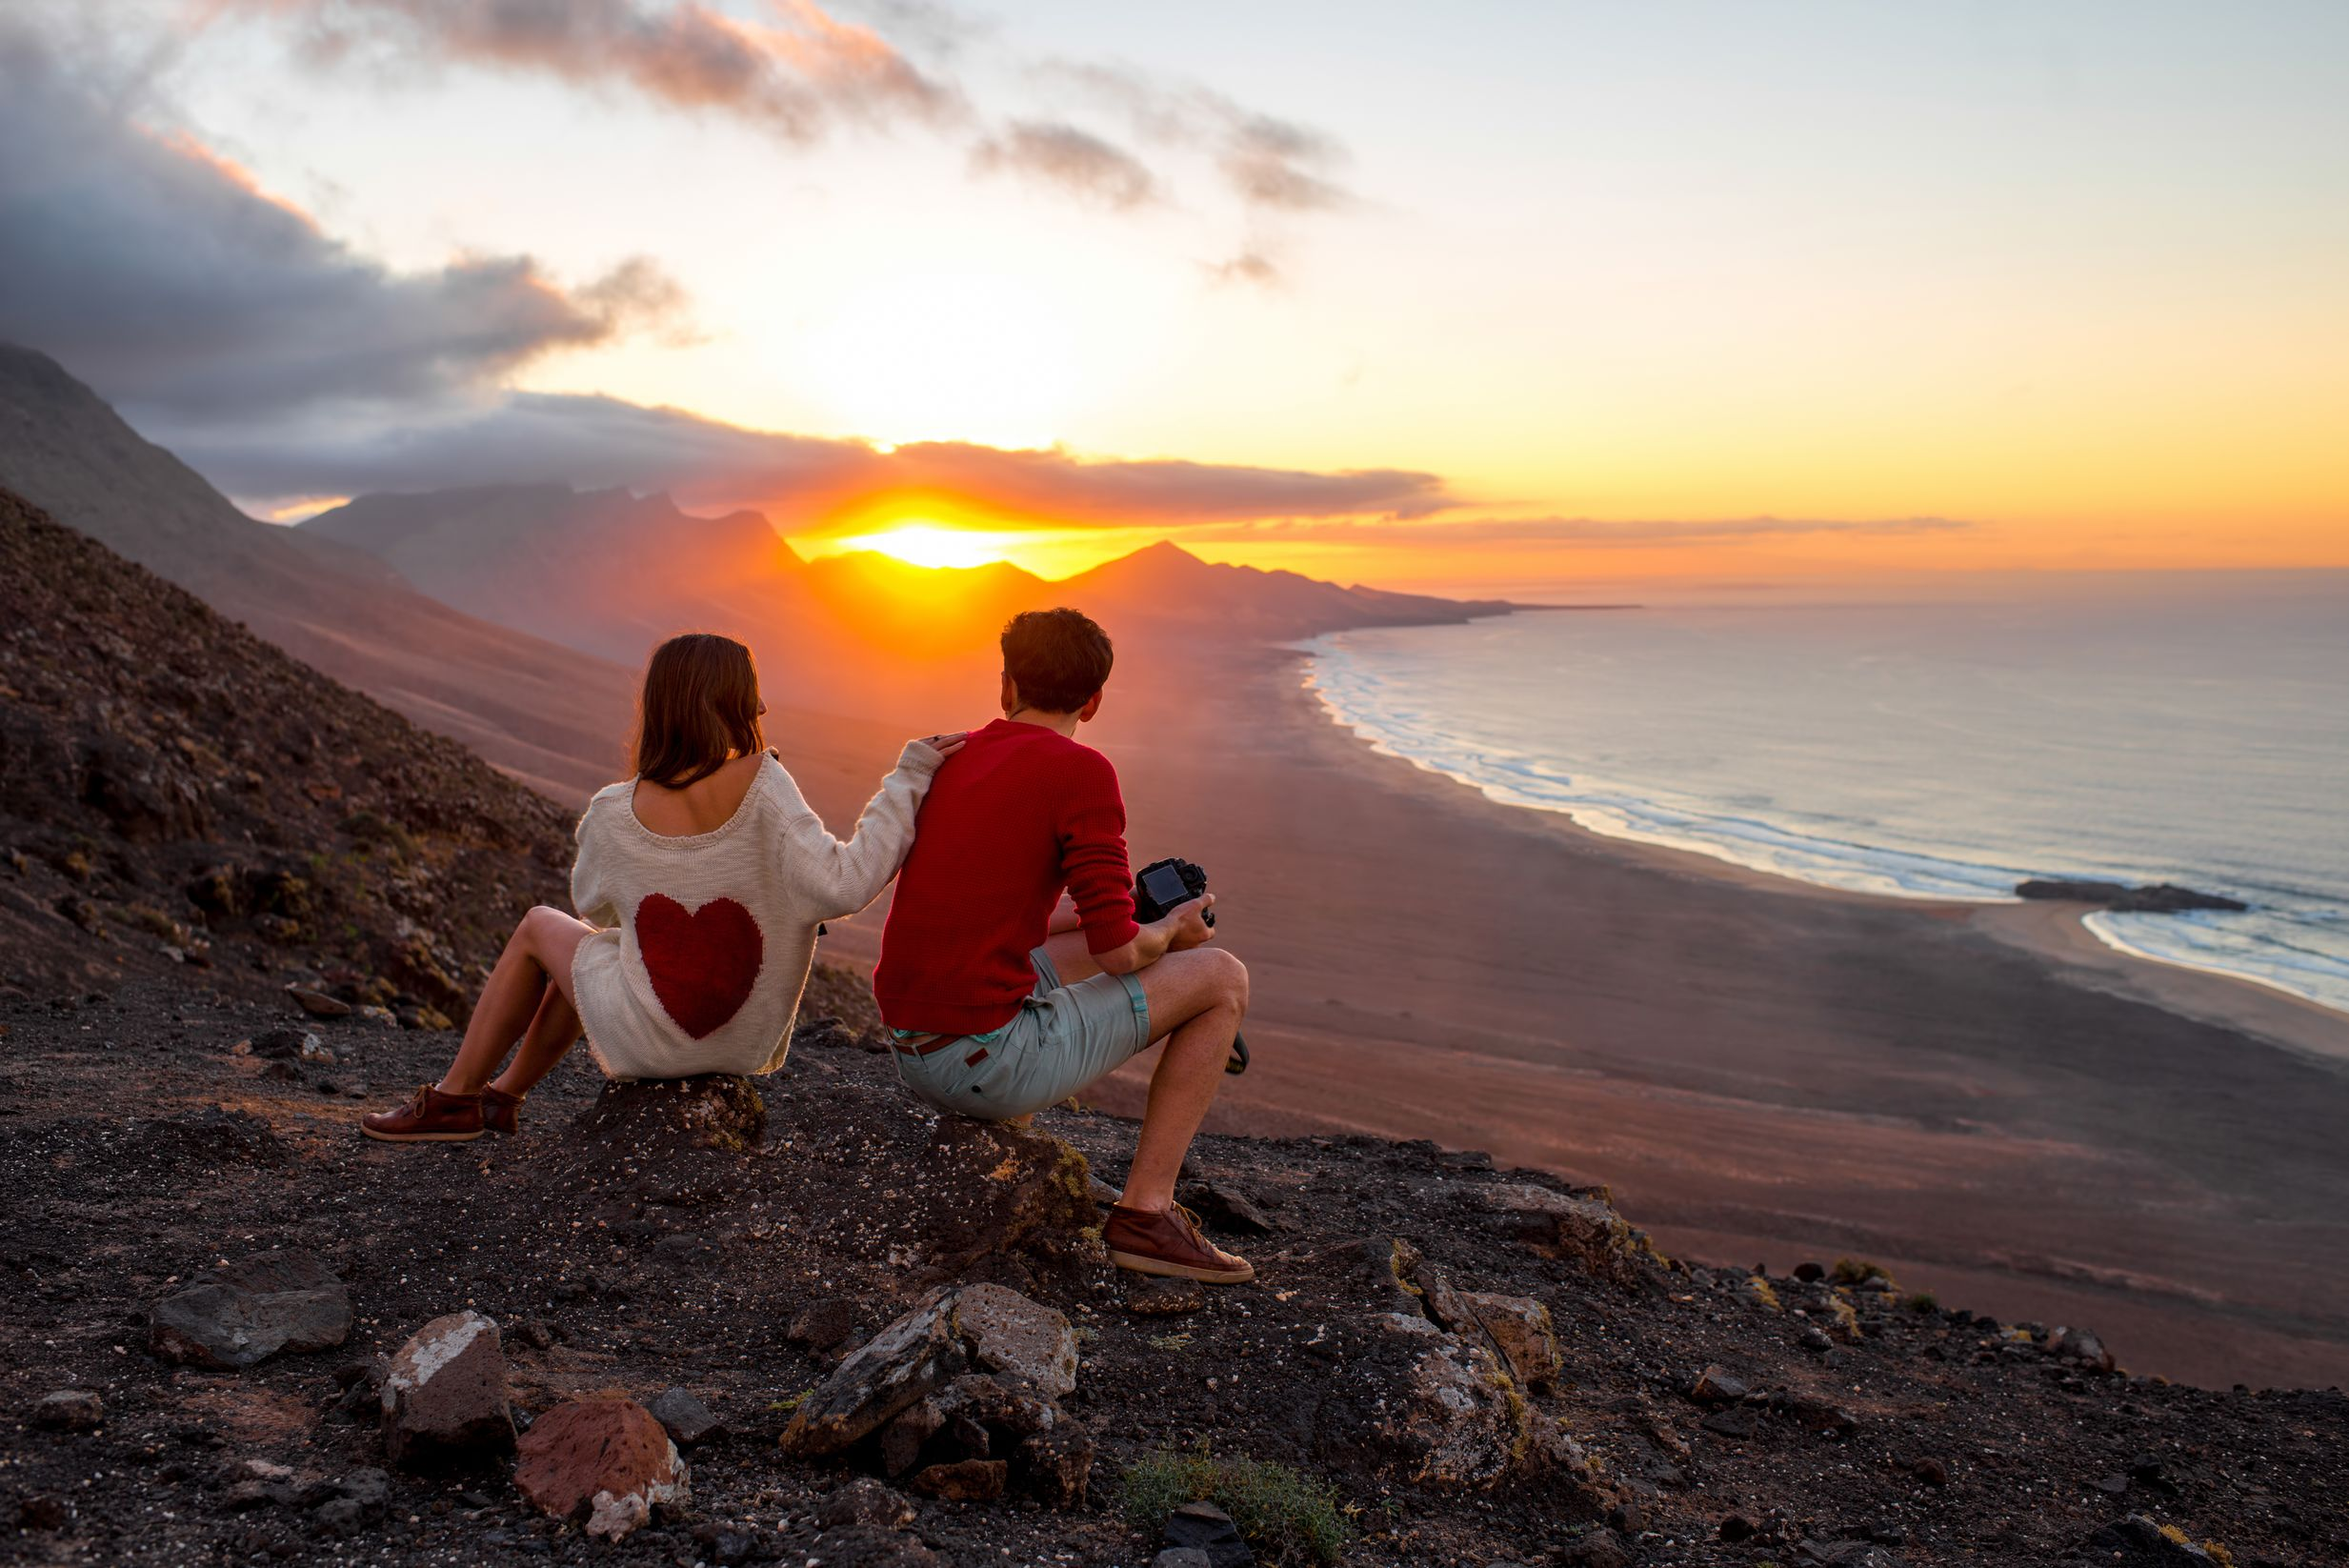 A couple look at the sunset from a volcano in Fuerteventura, Spain